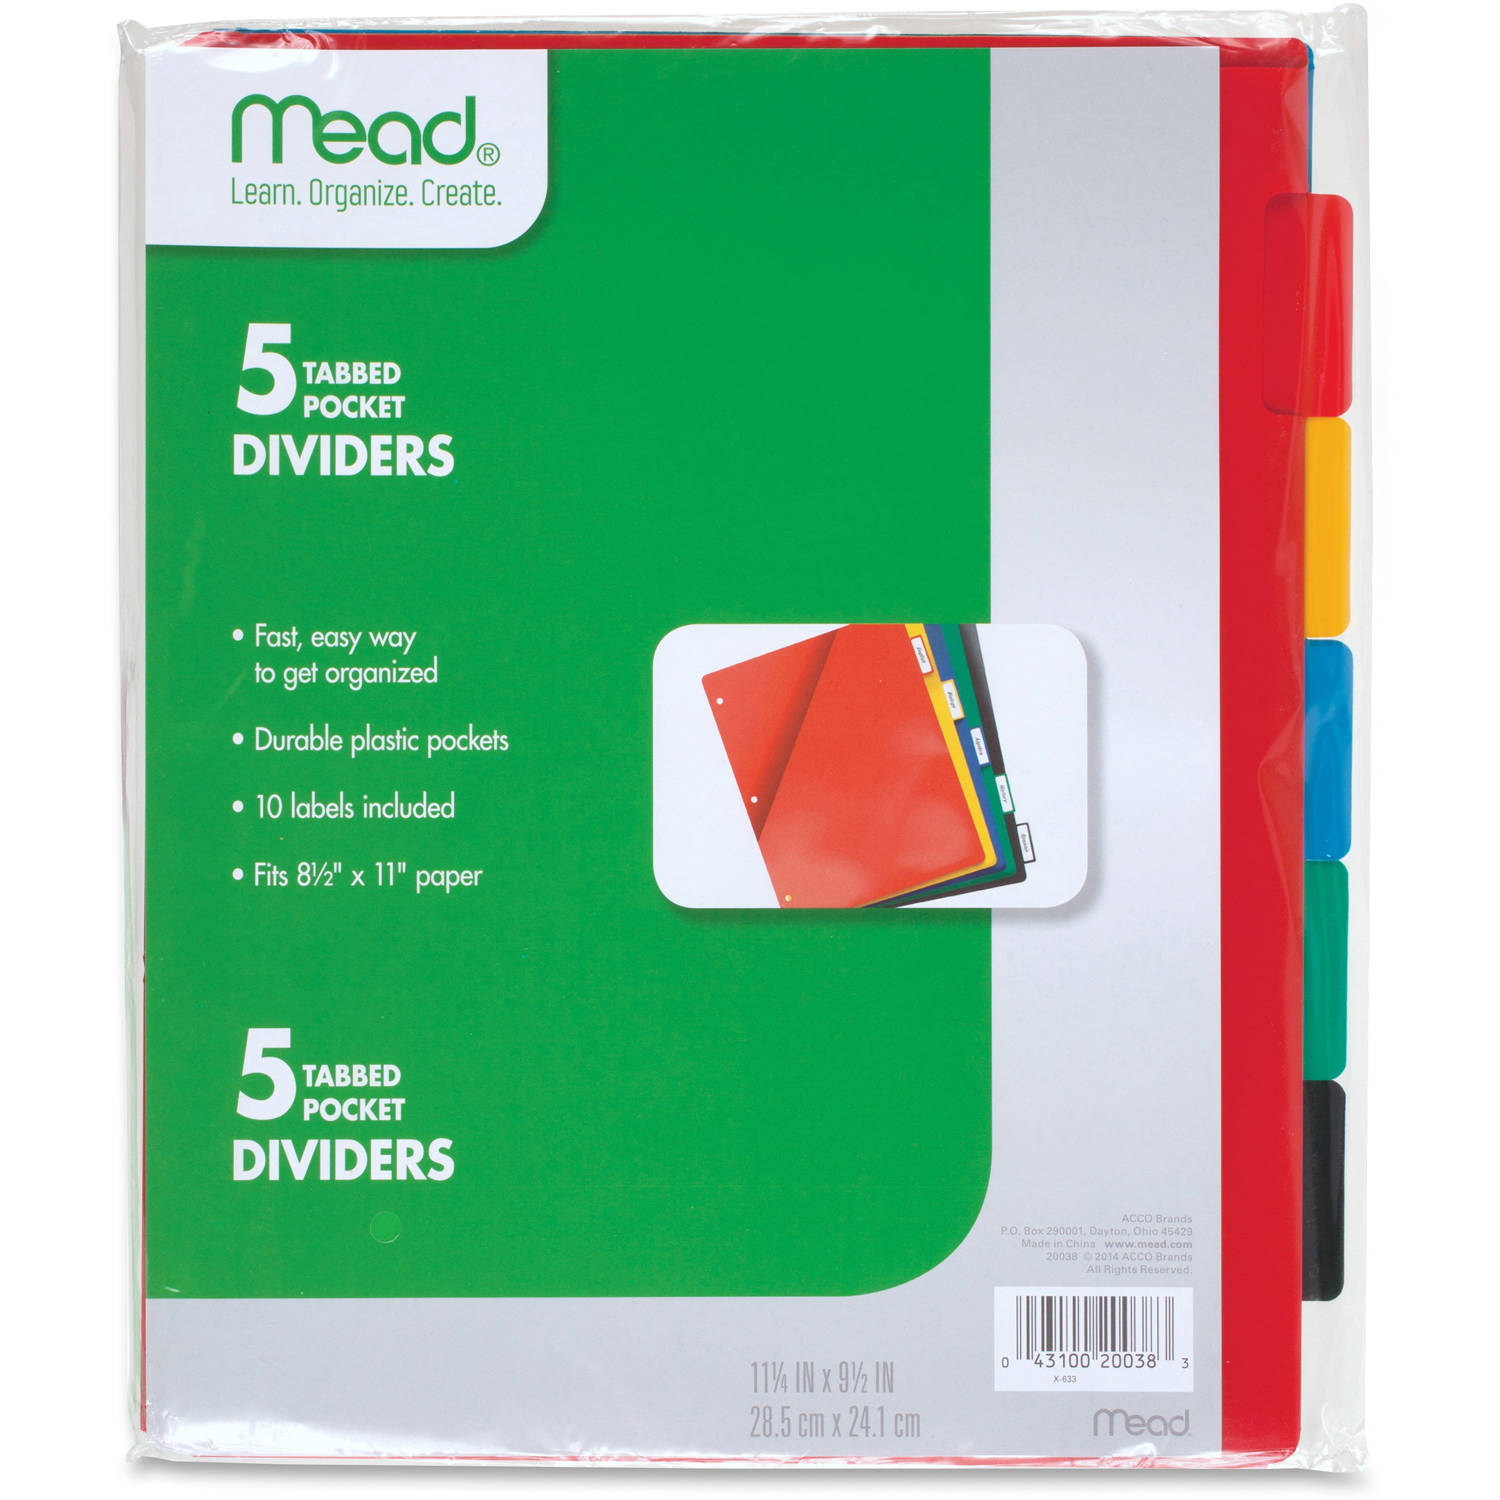 Five Star 5 Tabbed Pocket Dividers, Pack of 5, Assorted